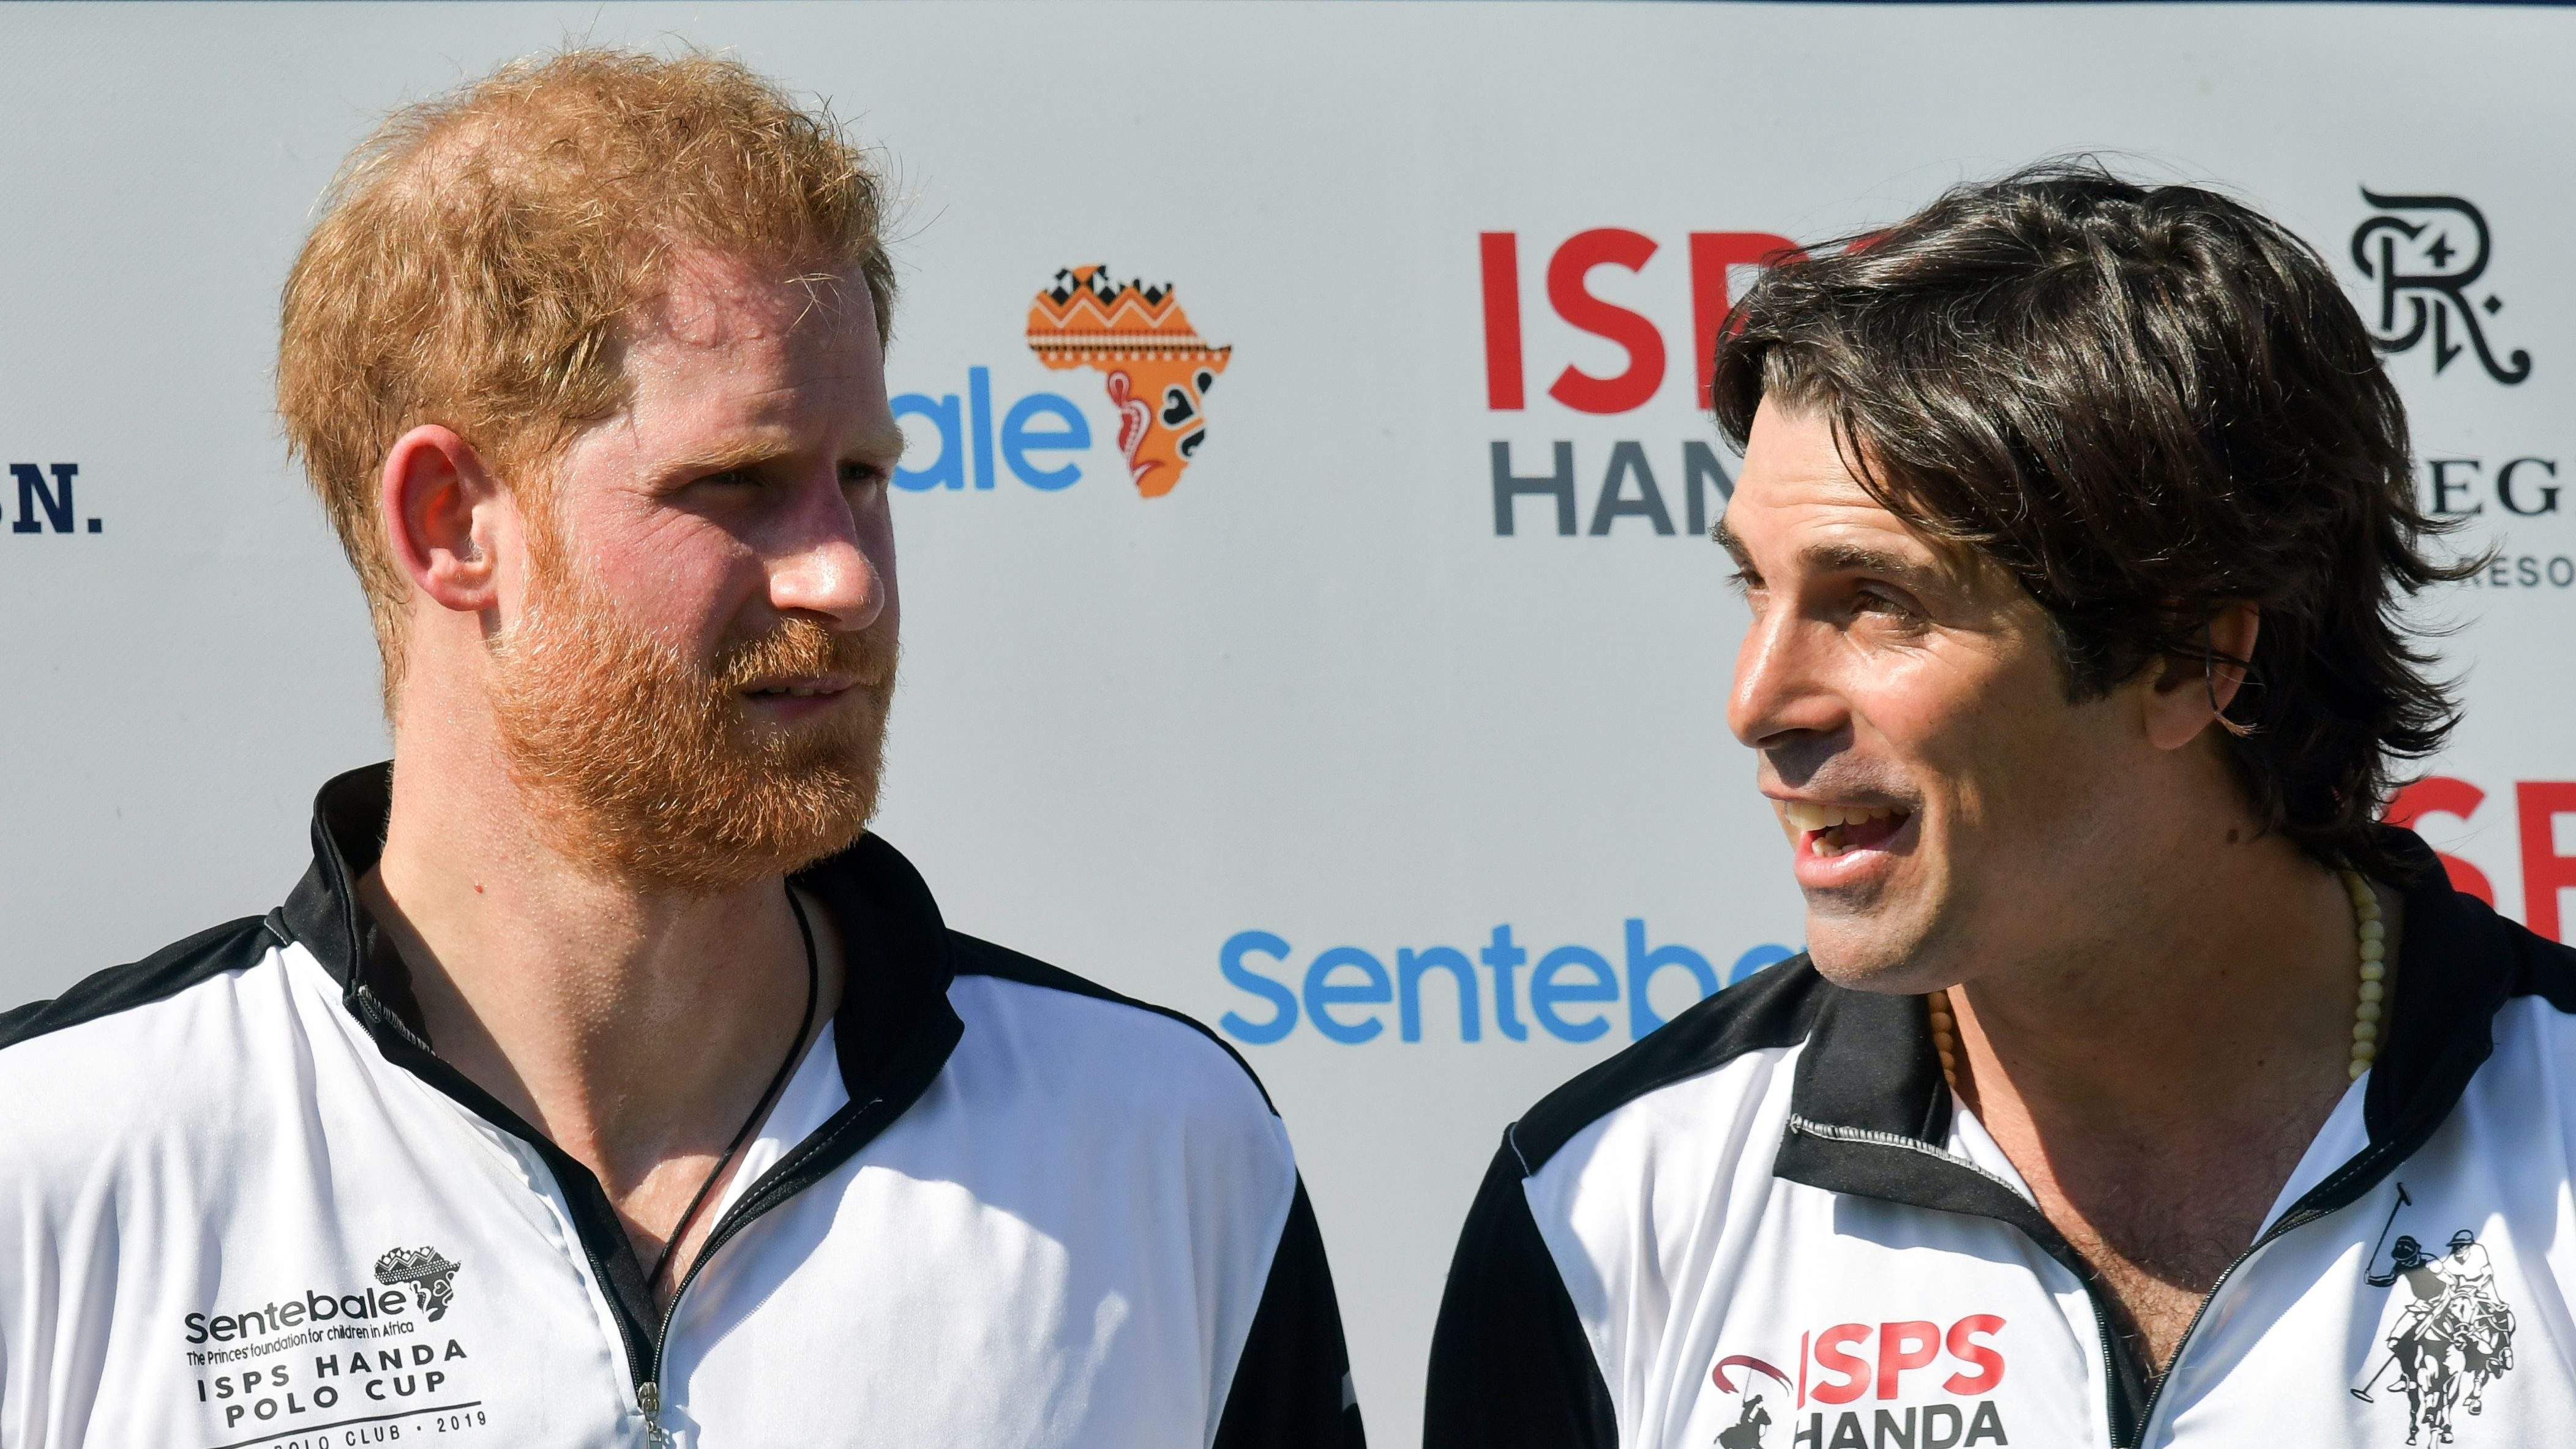 Prince Harry Wants to Make the 'World a Better Place' Says Longtime Friend Nacho Figueras